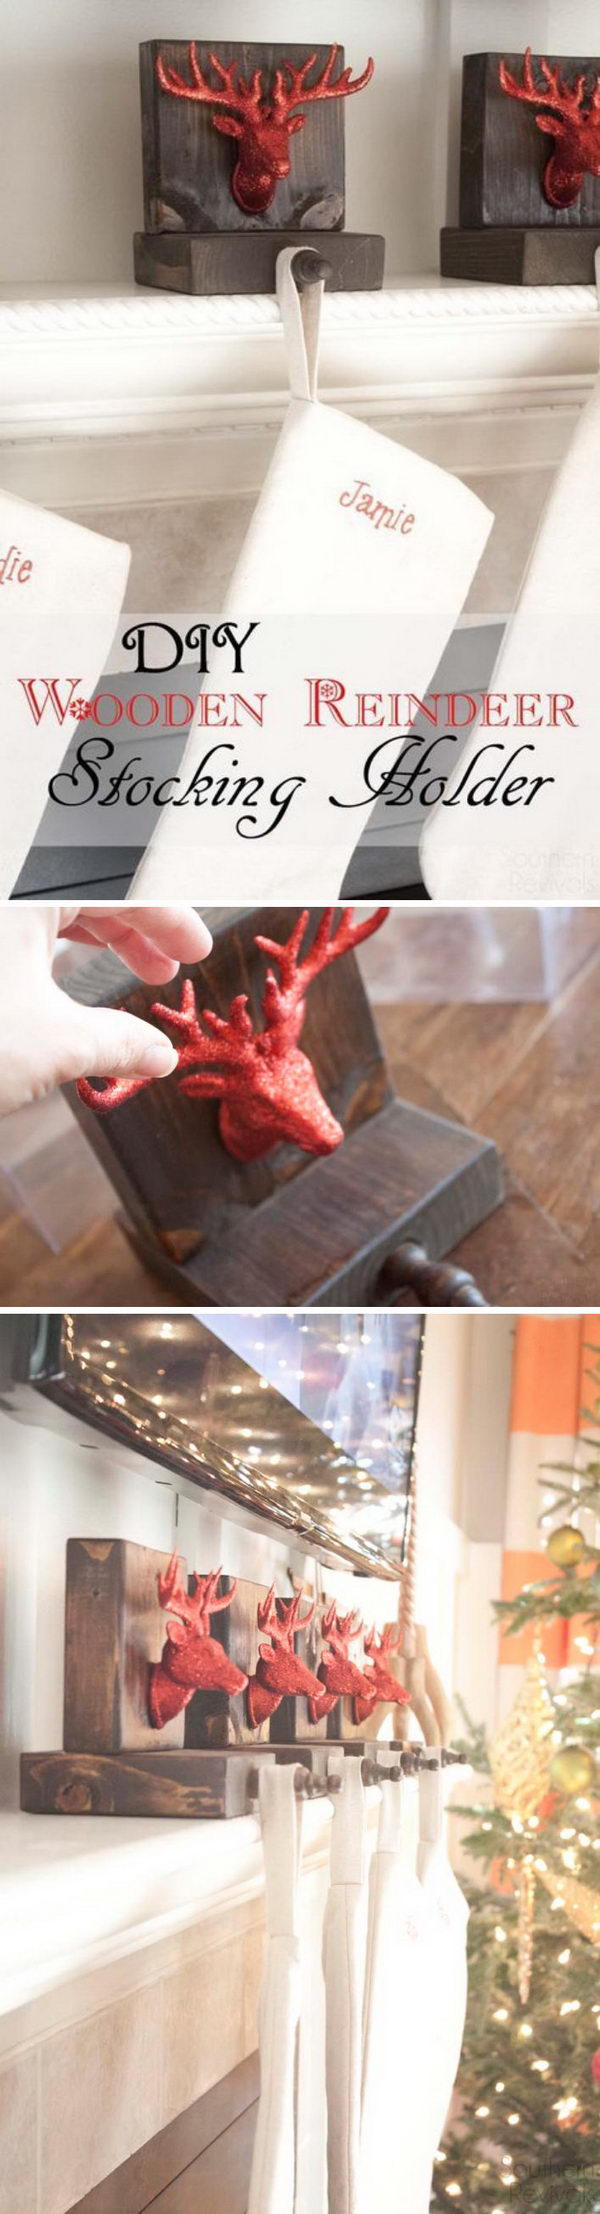 DIY Wooden Reindeer Stocking Holders.